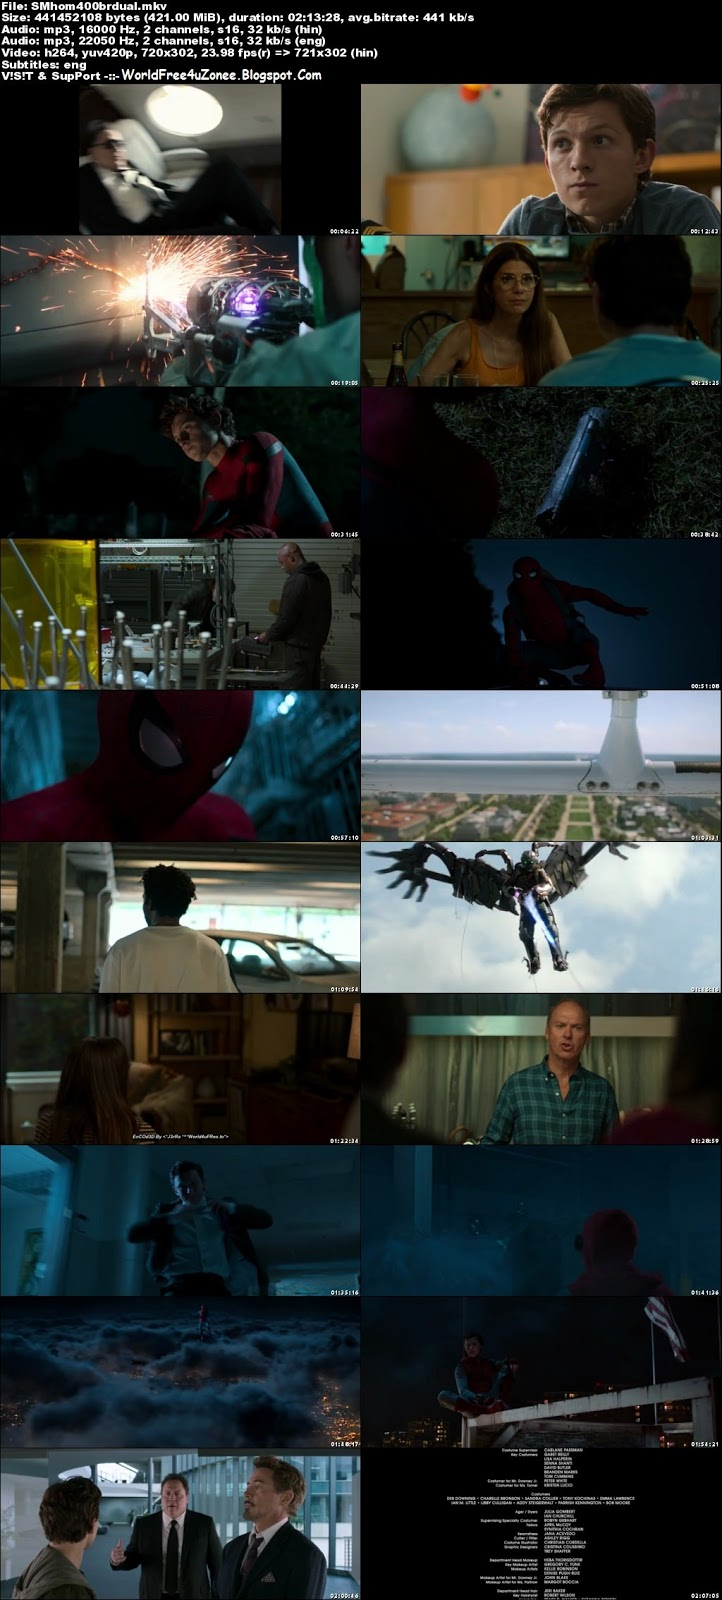 Spider Man Homecoming (2017) Dual Audio BRRip 480p 400MB Full Movie Free Download And Watch Online Latest Hollywood Dual Audio Hindi Dubbed Movies 2017 Free At WorldFree4uZonee.Blogspot.Com